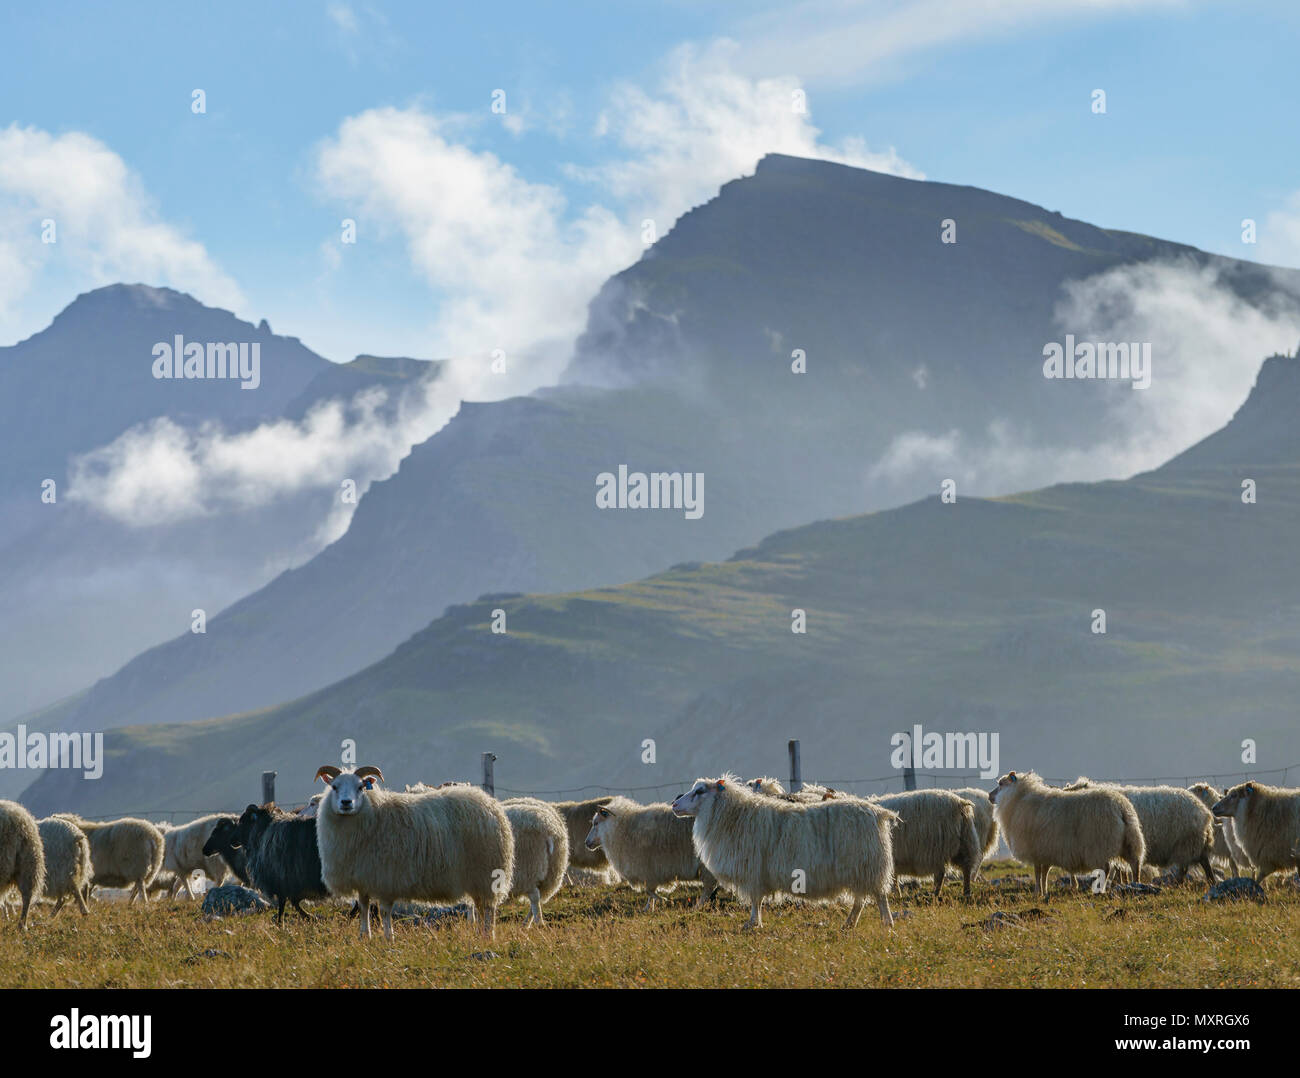 Free Range Sheep Grazing on grass and herbs, Iceland - Stock Image